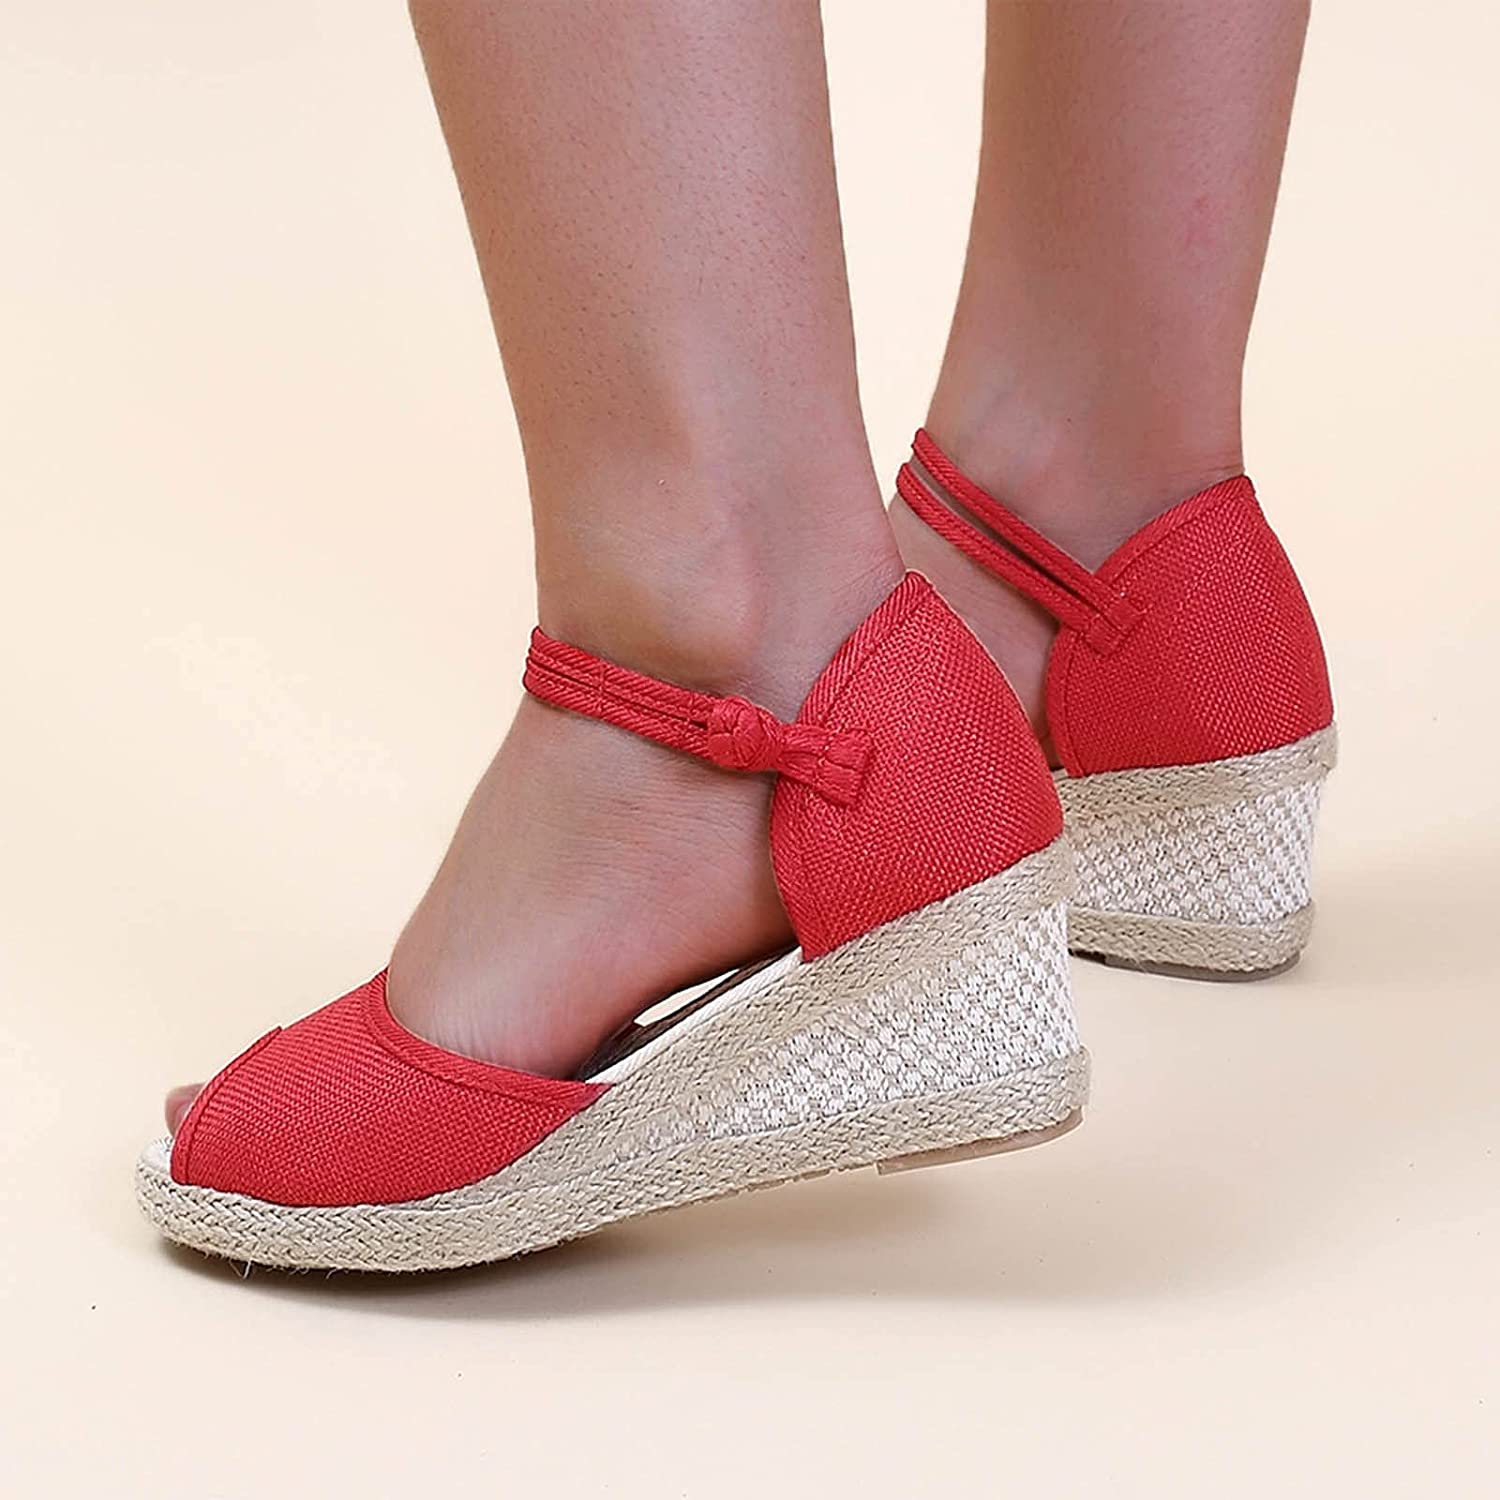 ZiSUGP Women's Casual Shoes Breathable Slip-on Outdoor Leisure Wedges Sandals